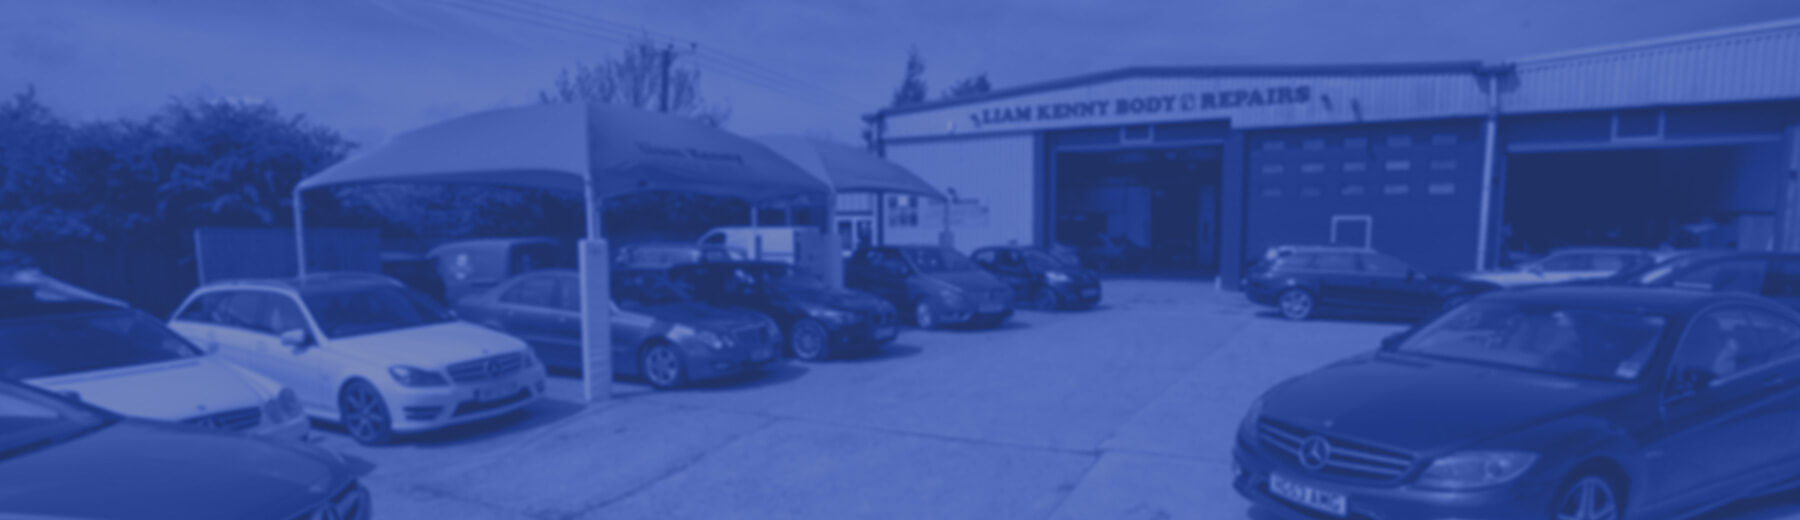 Liam Kenny Motor Body Repairs homepage banner